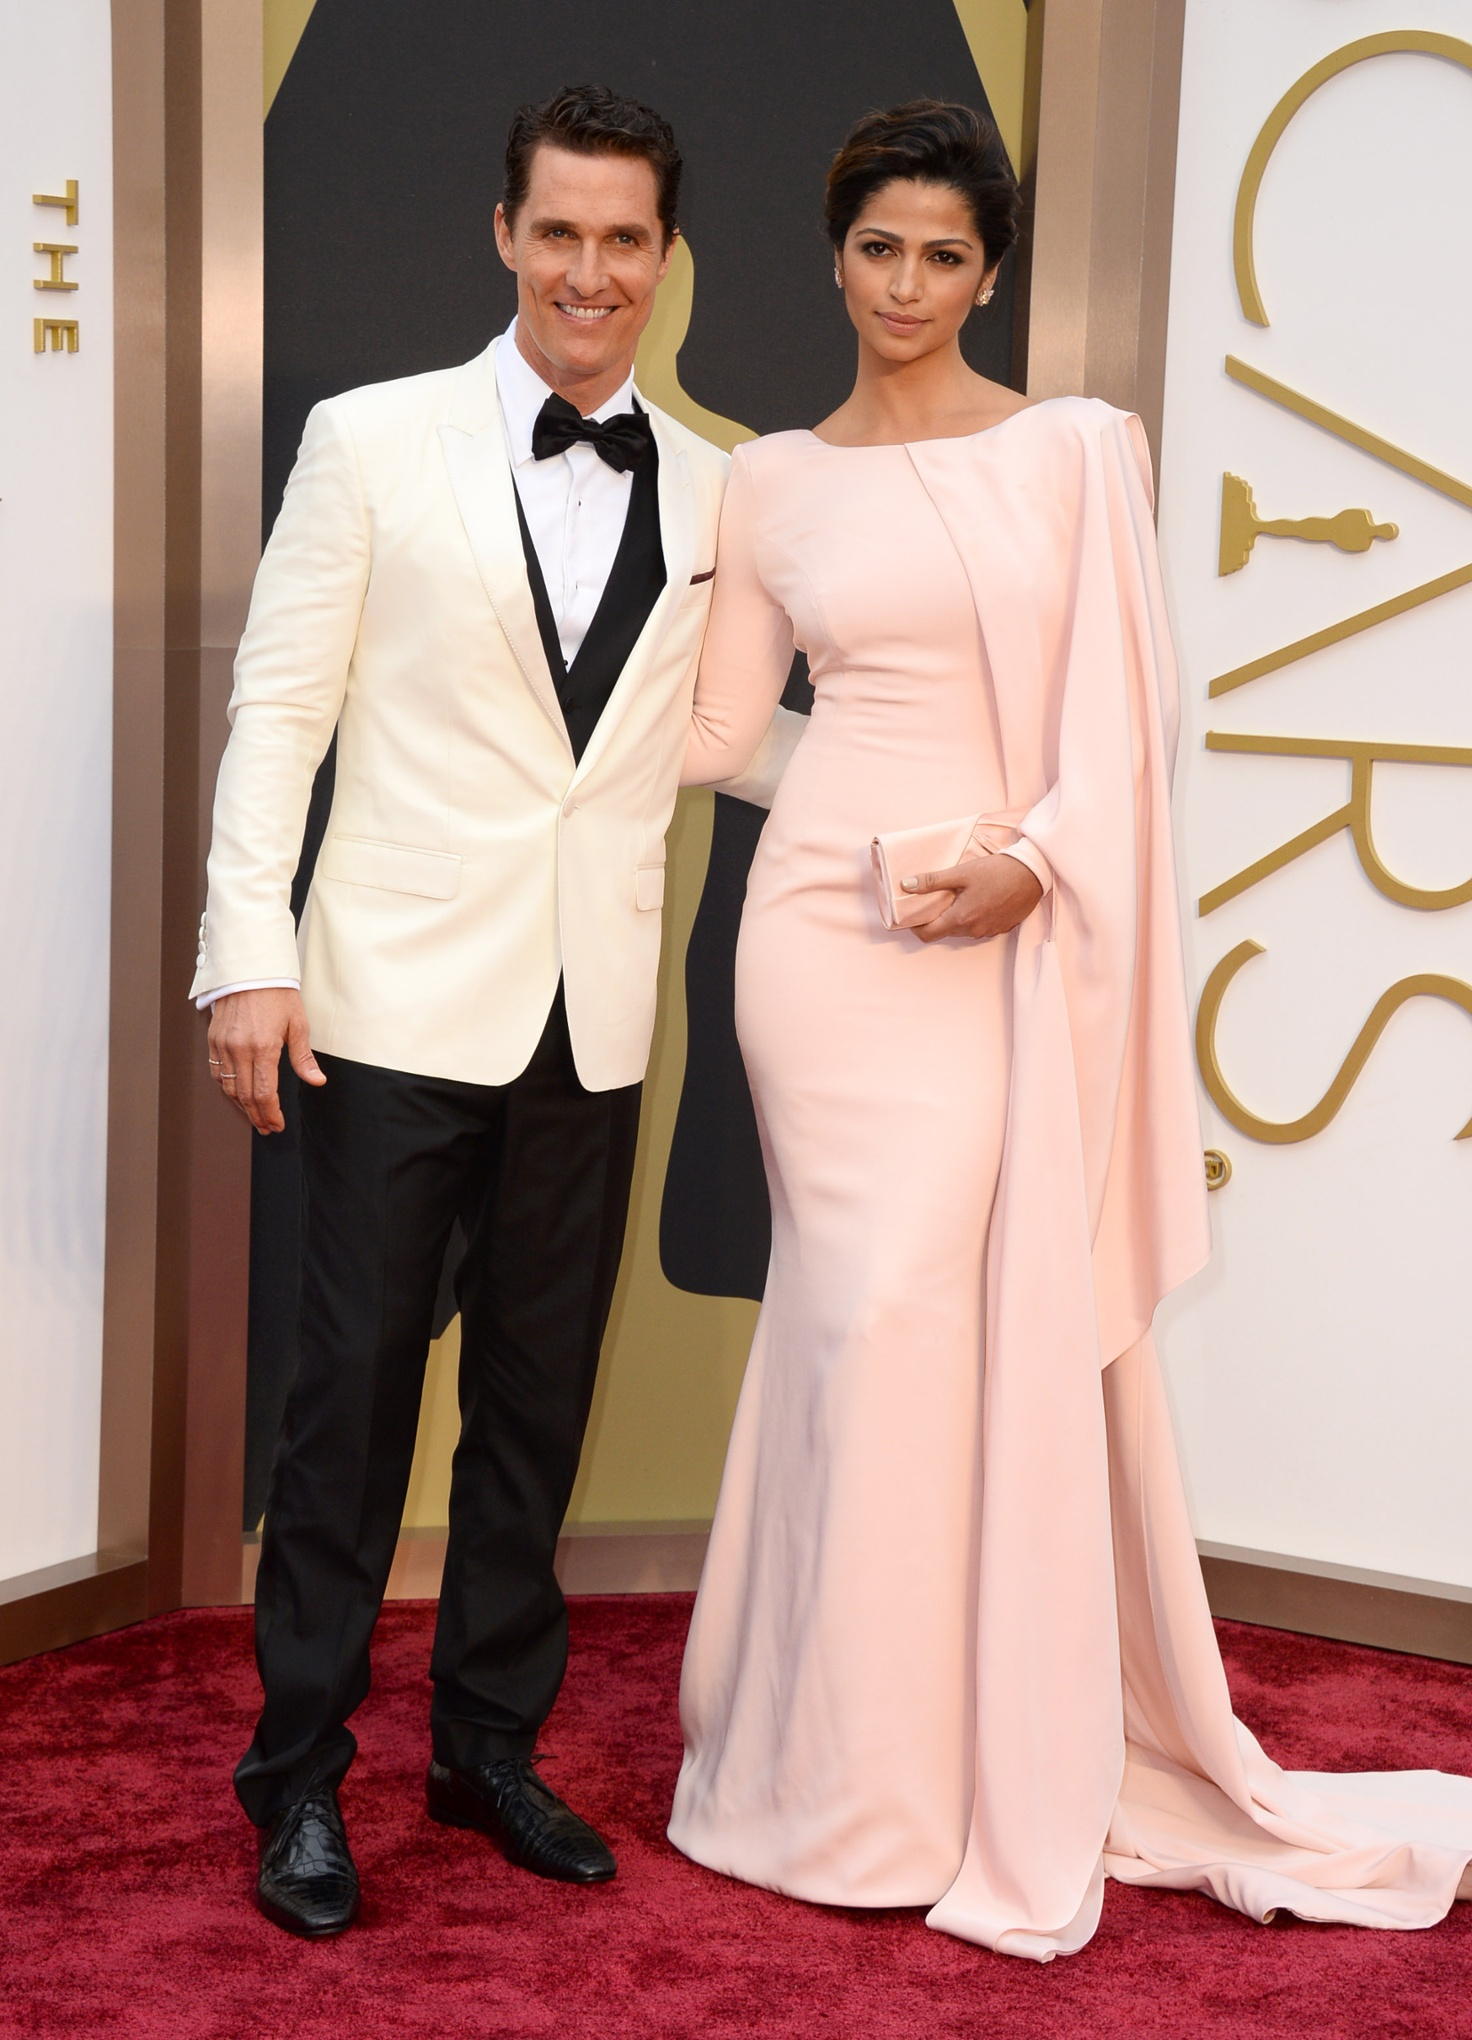 Matthew McConaughey and Camila Alves.